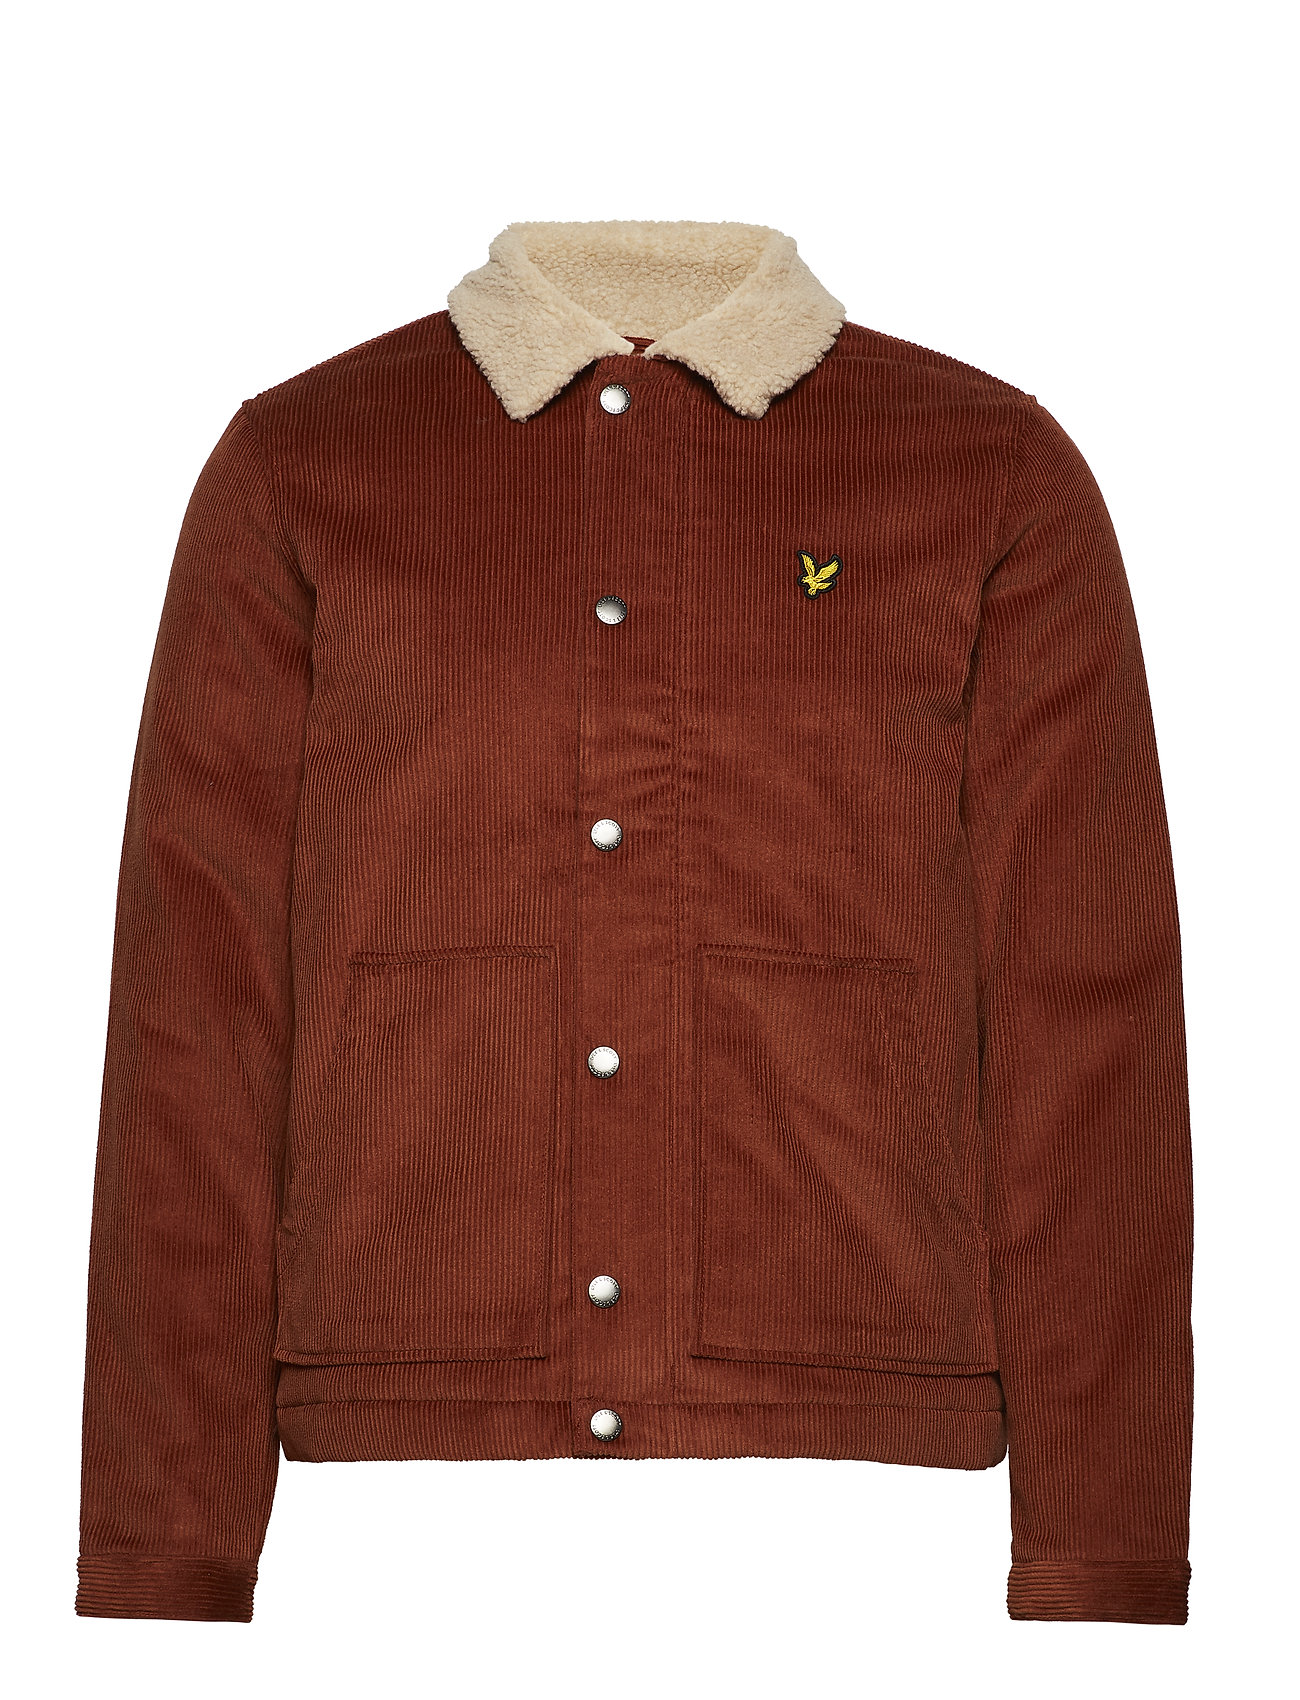 Lyle & Scott Jumbo Cord Shearling Jacket